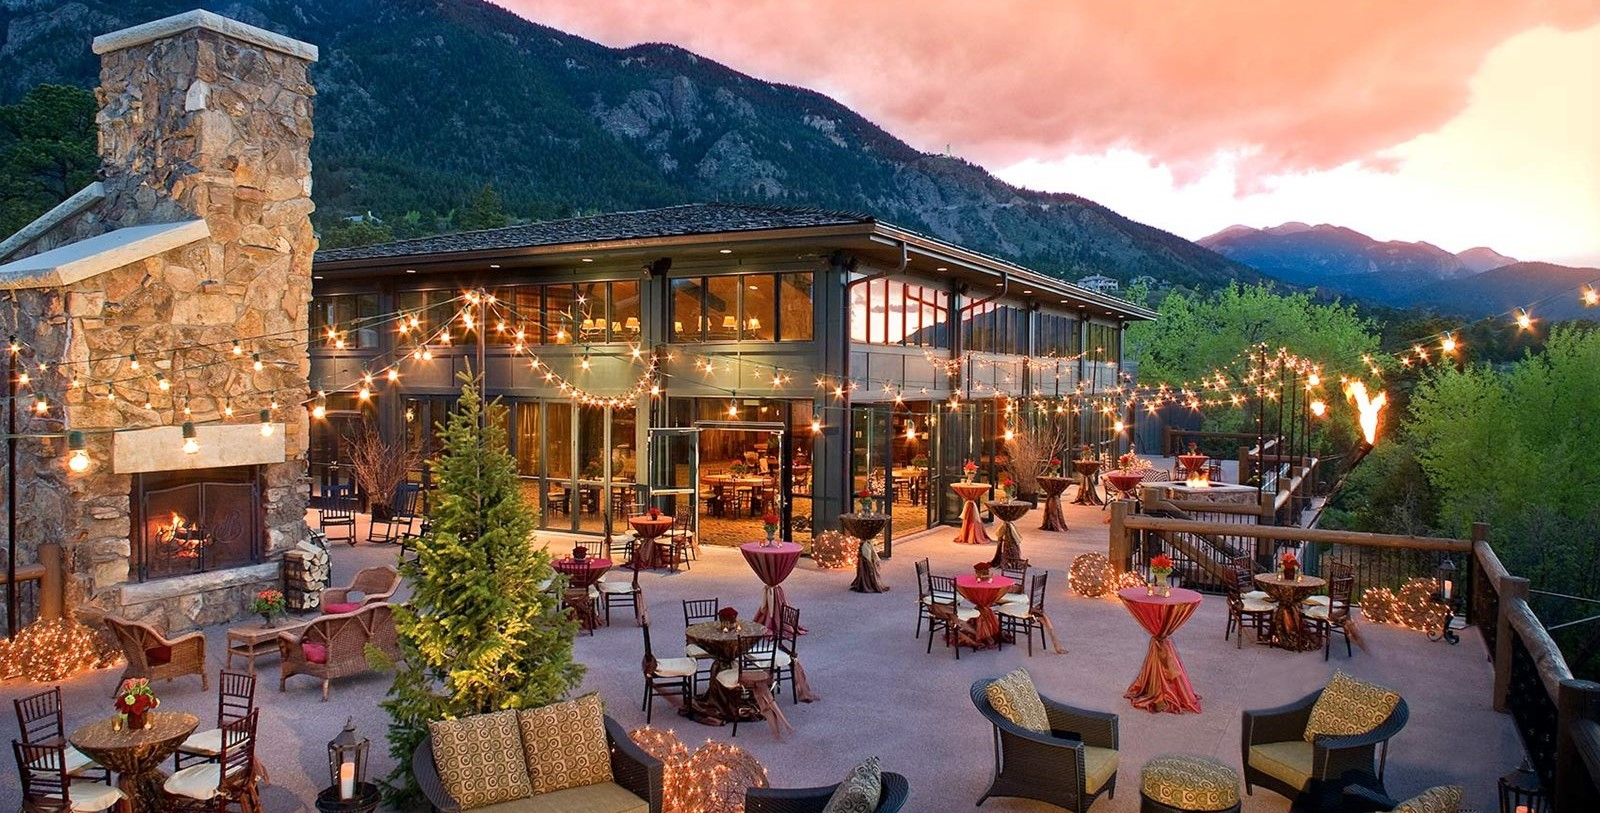 Image of Event at the Cheyenne Lodge, The Broadmoor Colorado Springs Colorado, Special Events